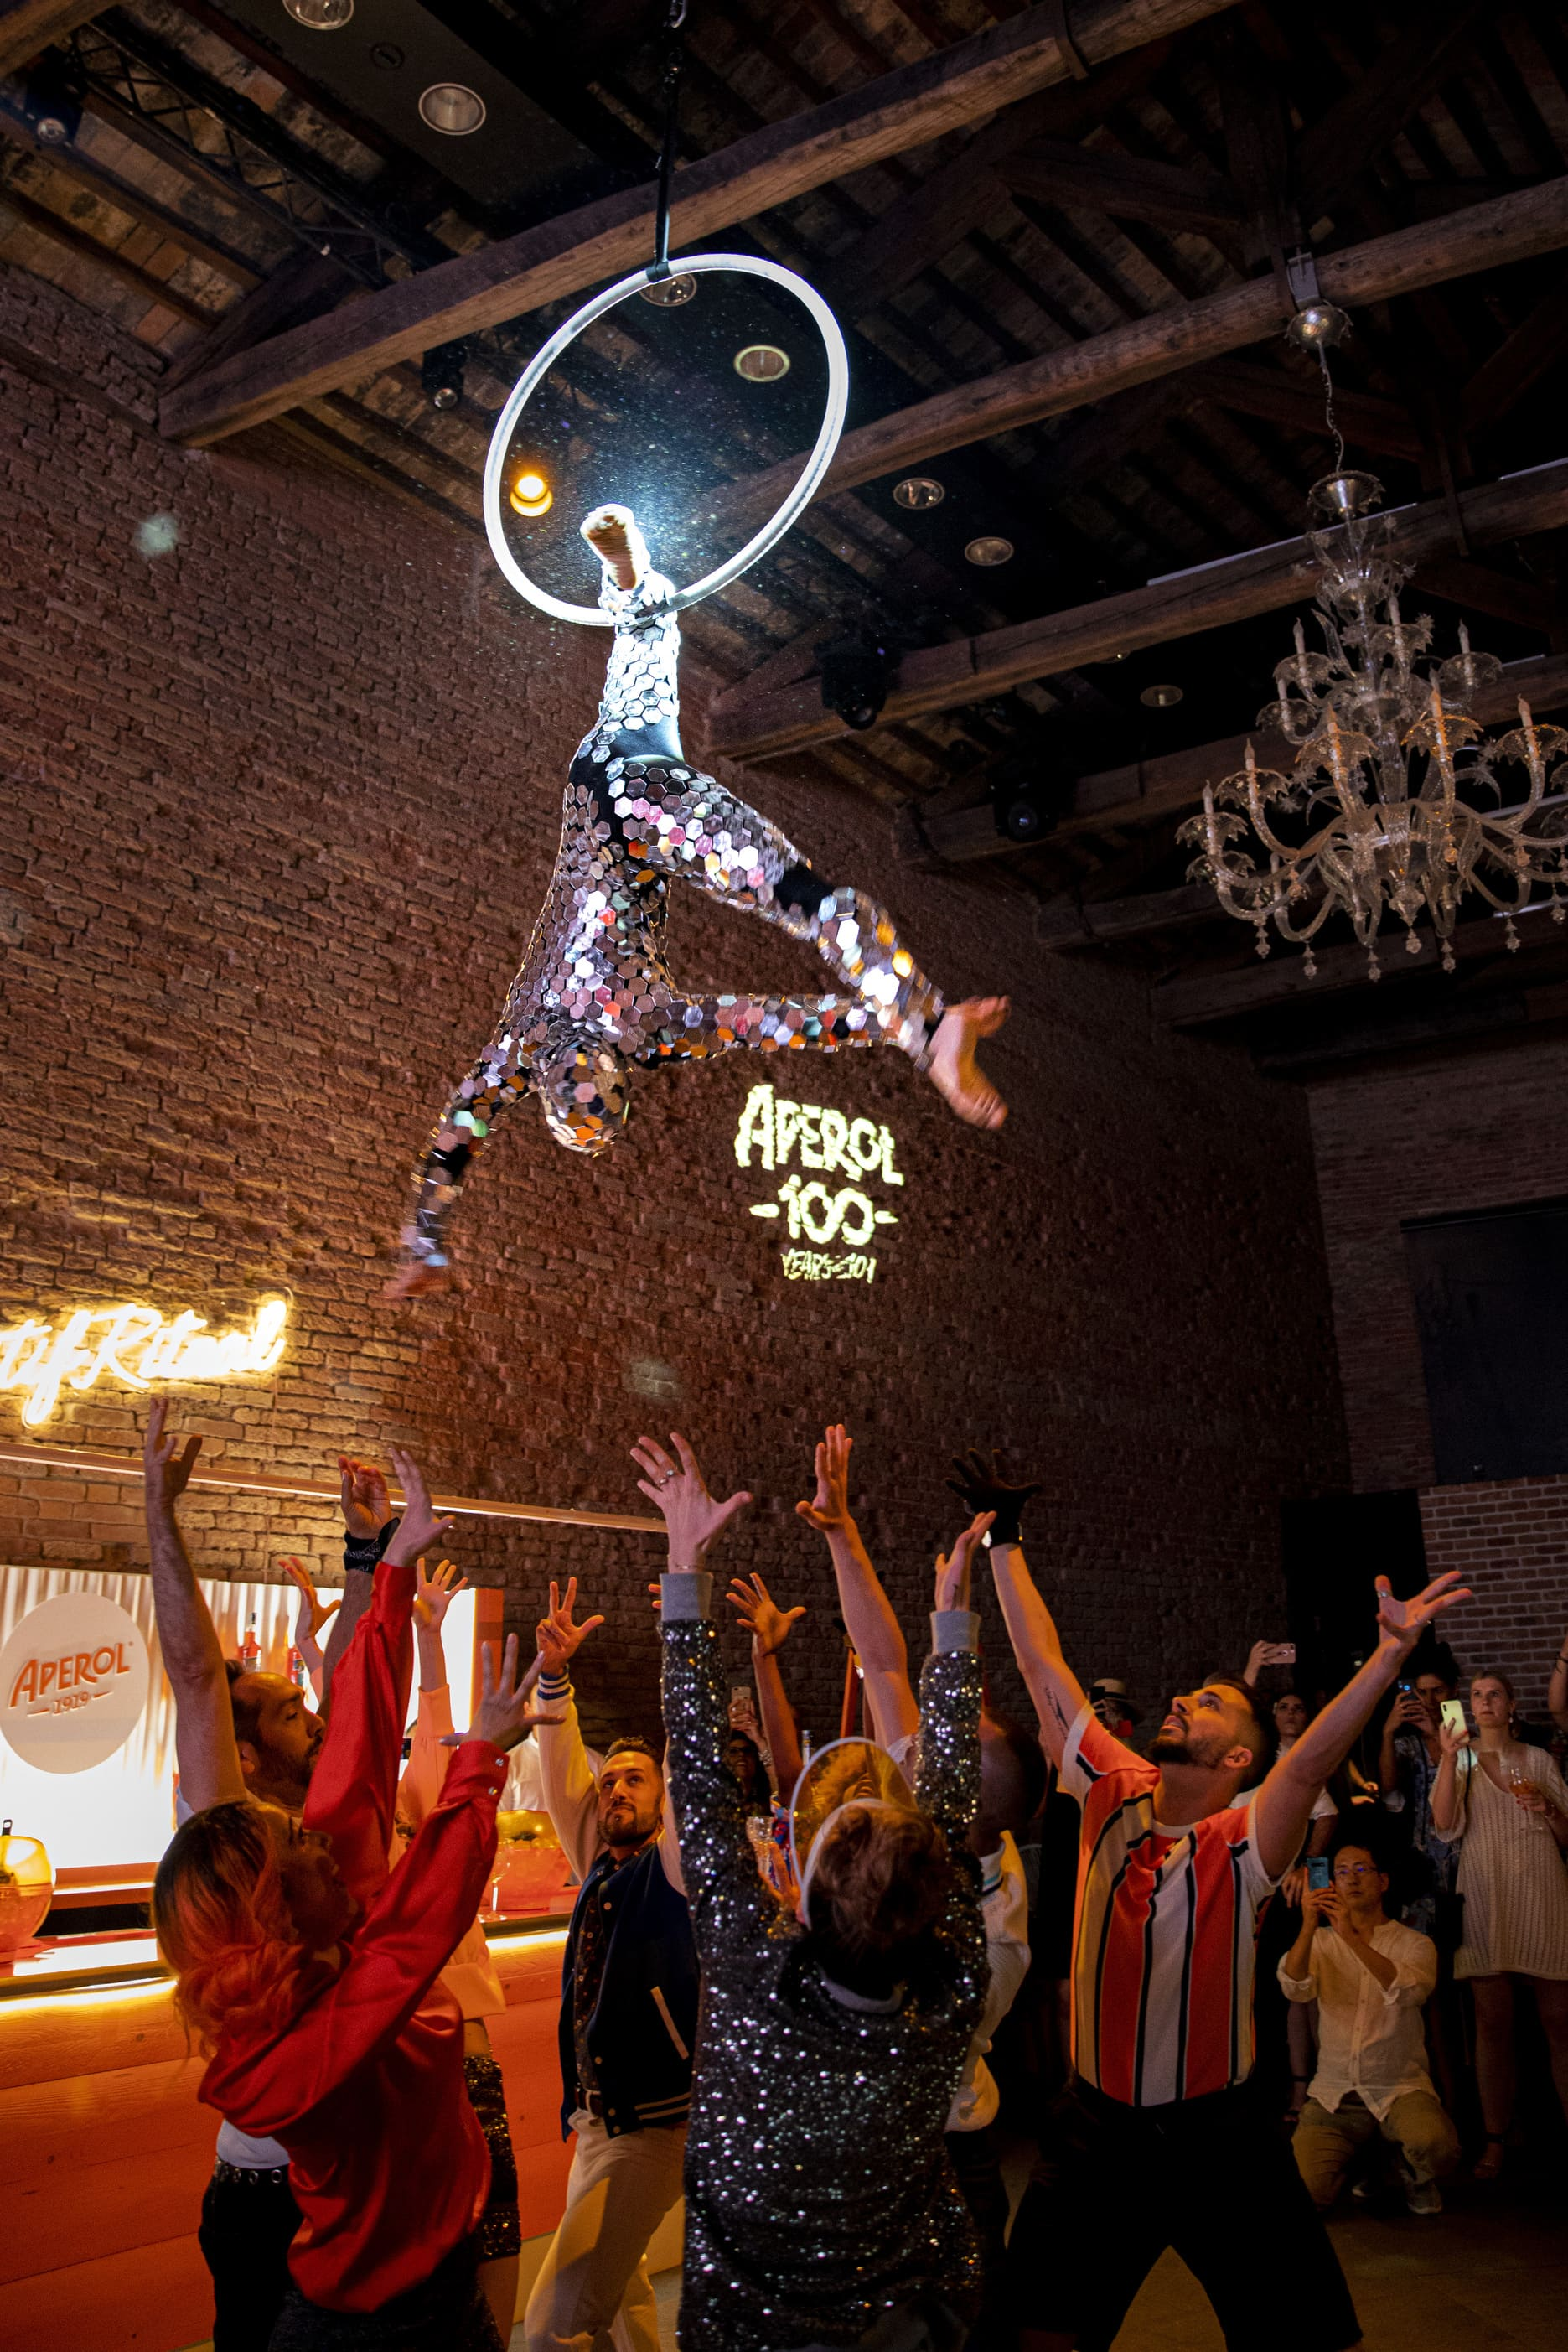 APEROL100__EVENT_PERFORMANCE